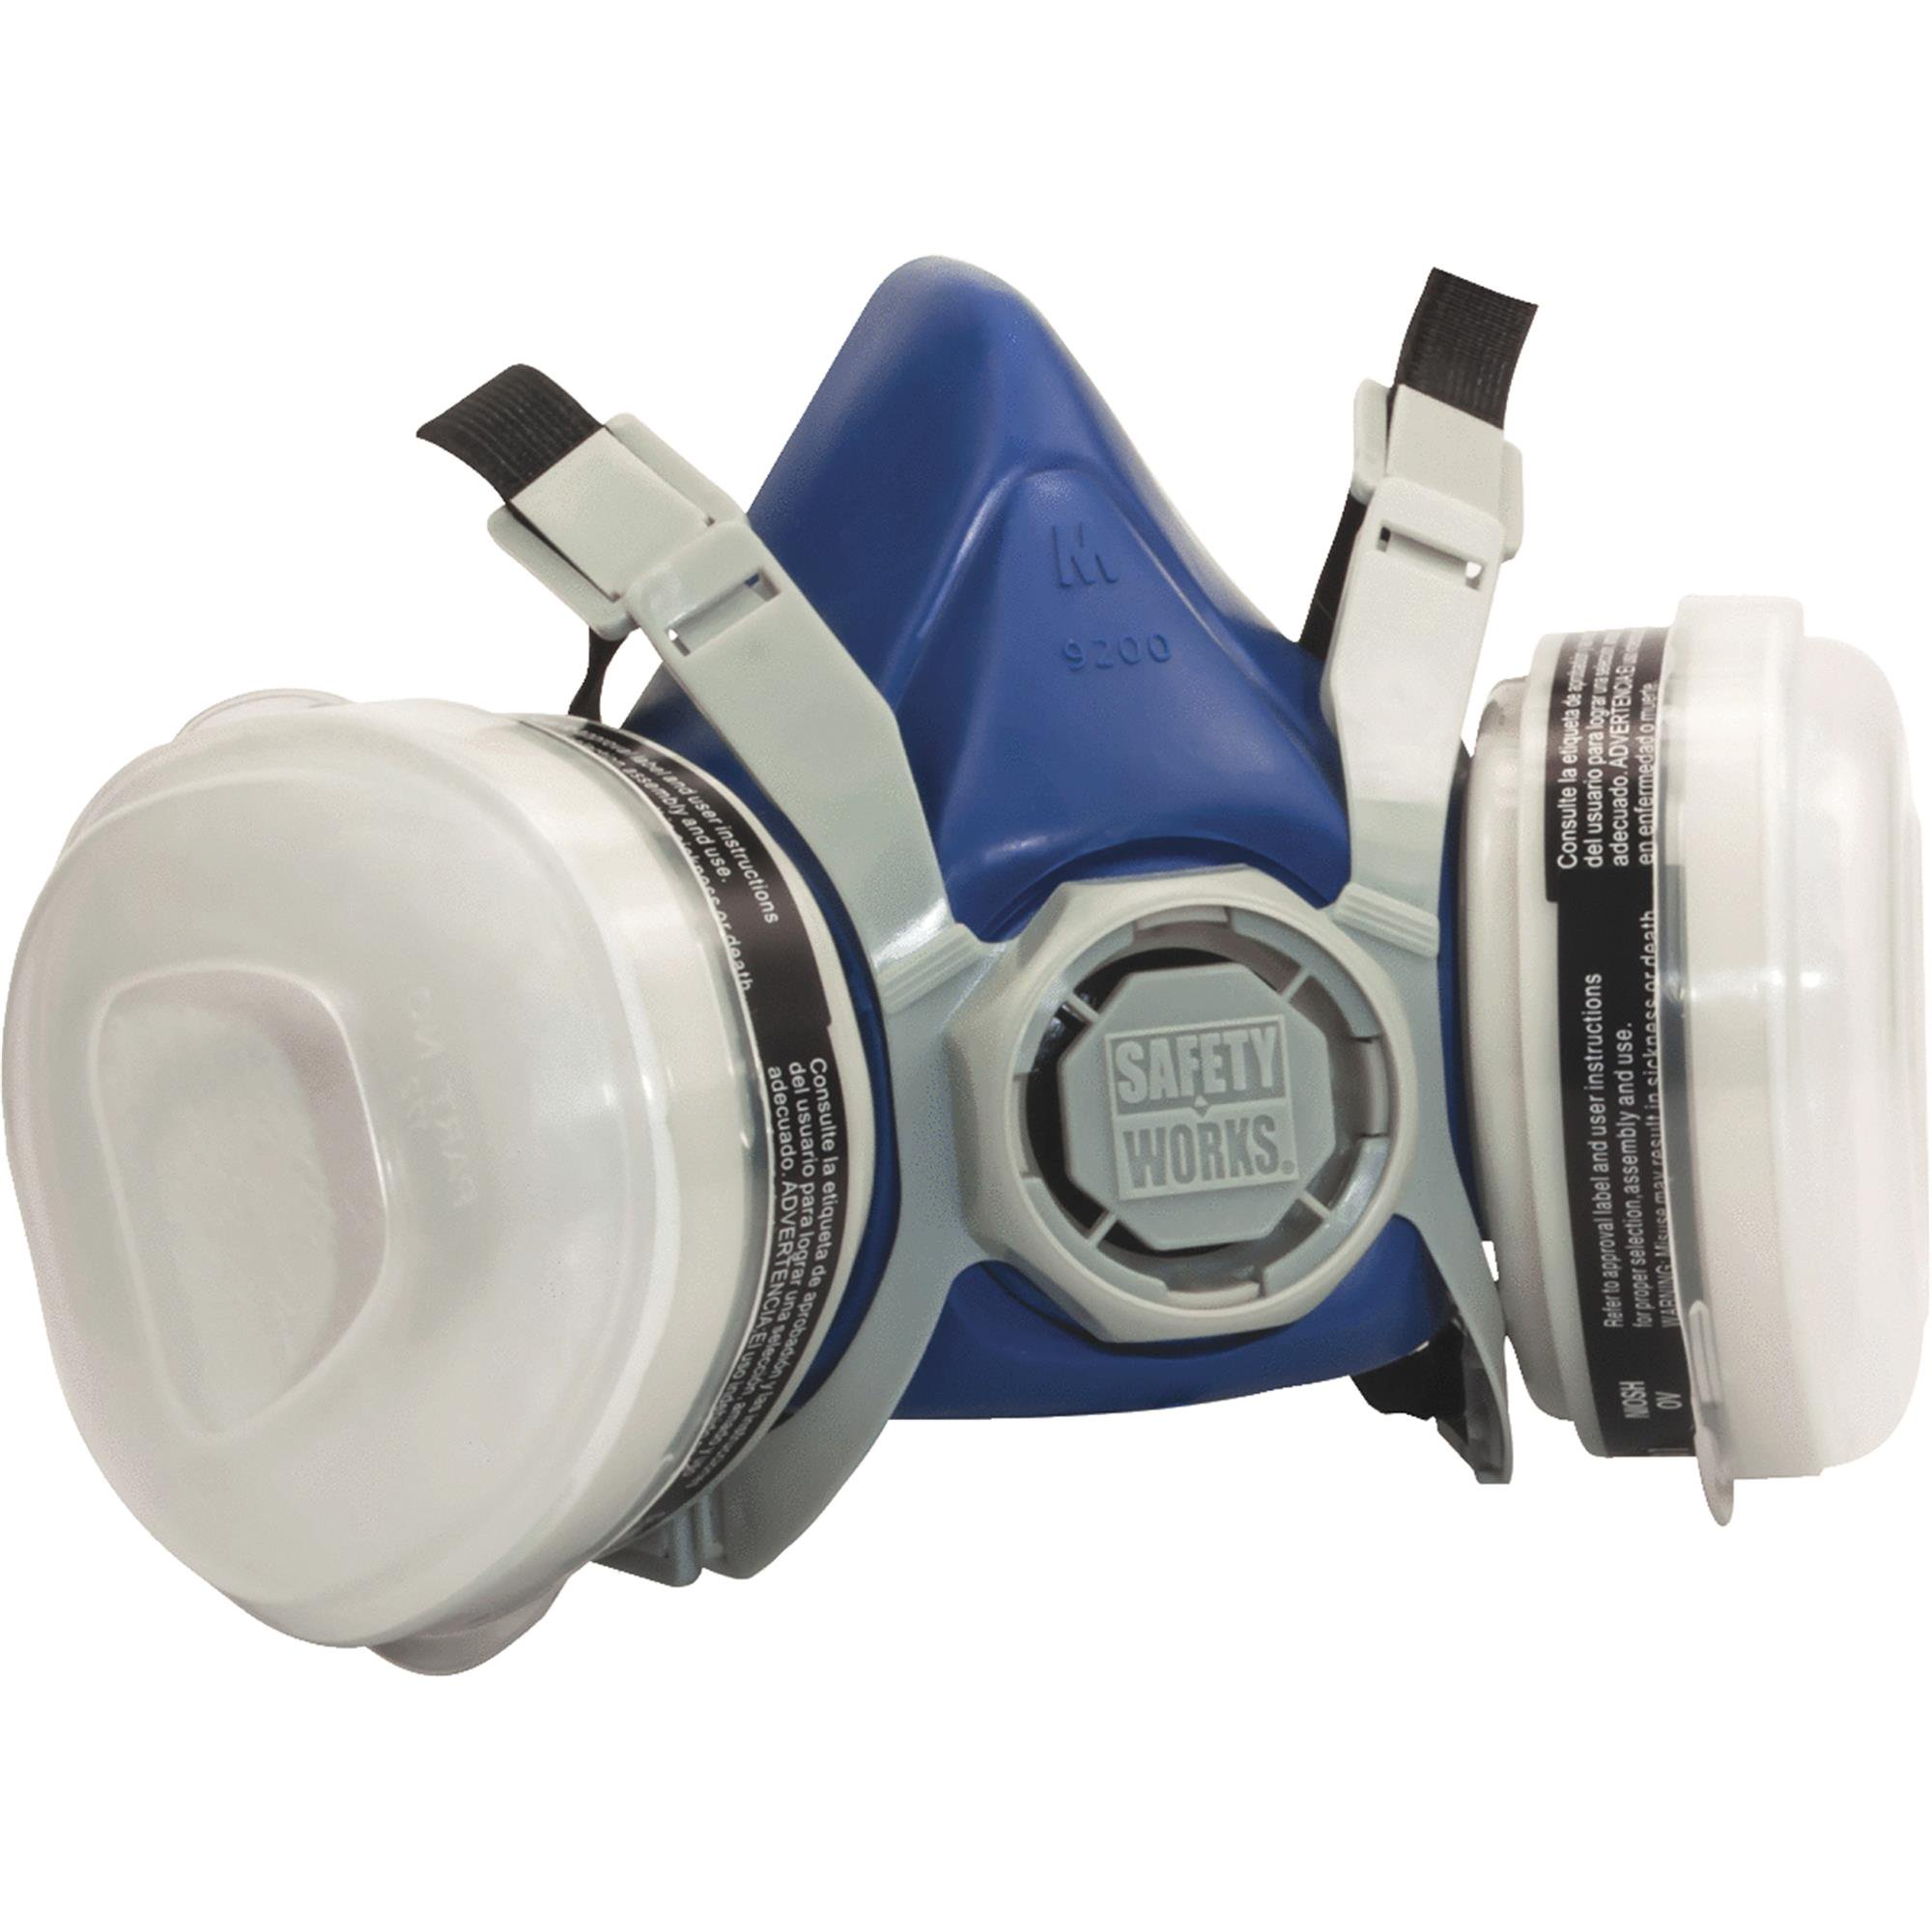 Safety Works Half- Mask P95 Paint & Pesticide Respirator, Medium